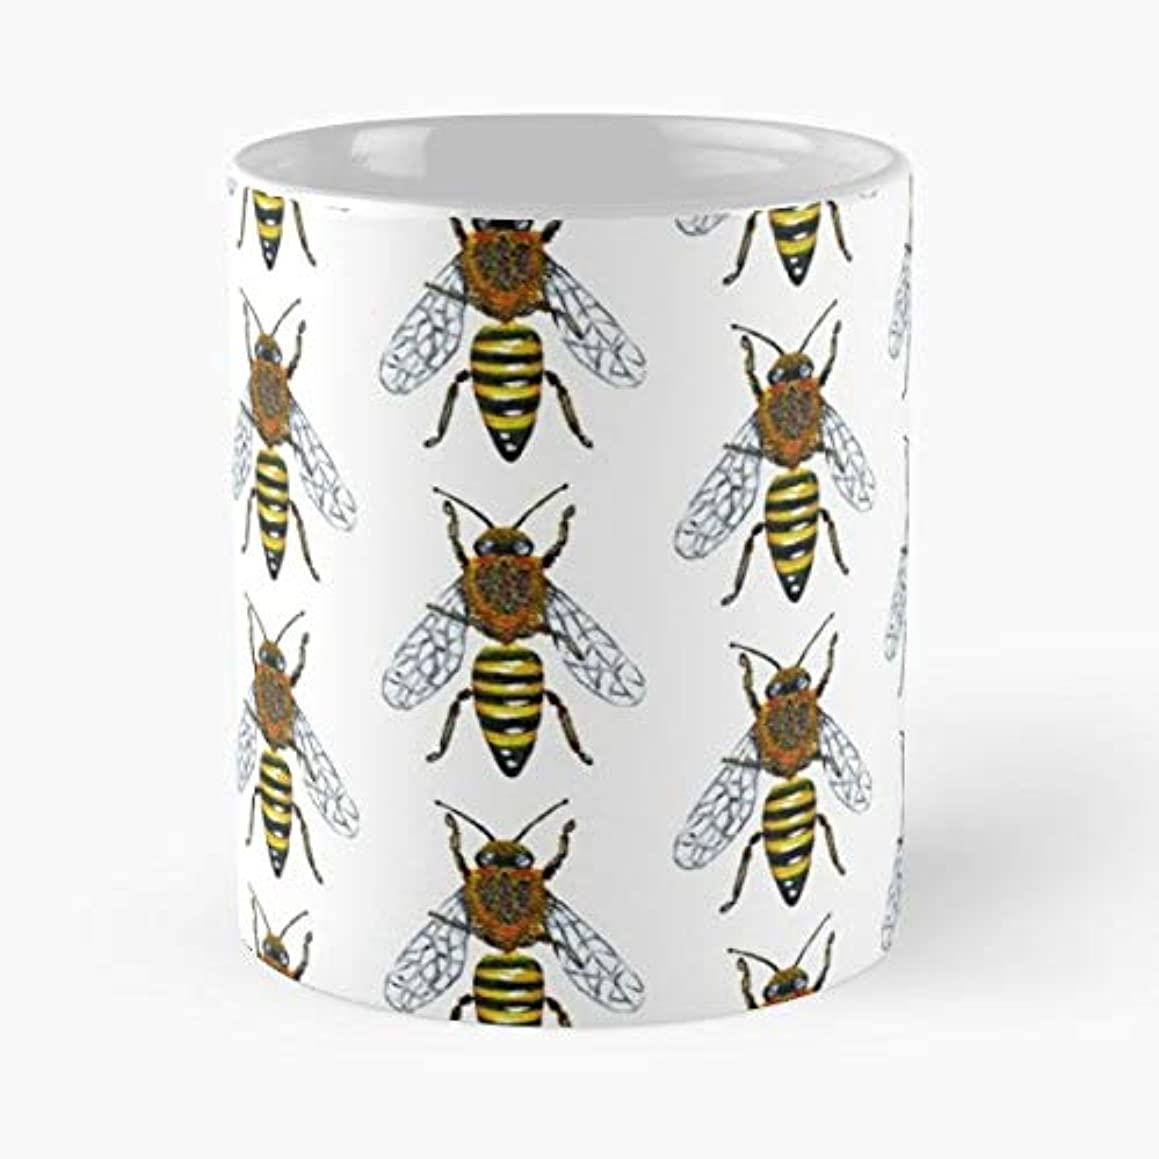 Bee Bees Honey Nature - Funny Sophisticated Design Great Gifts -11 Oz Coffee Mug.the Best Gift For Holidays.